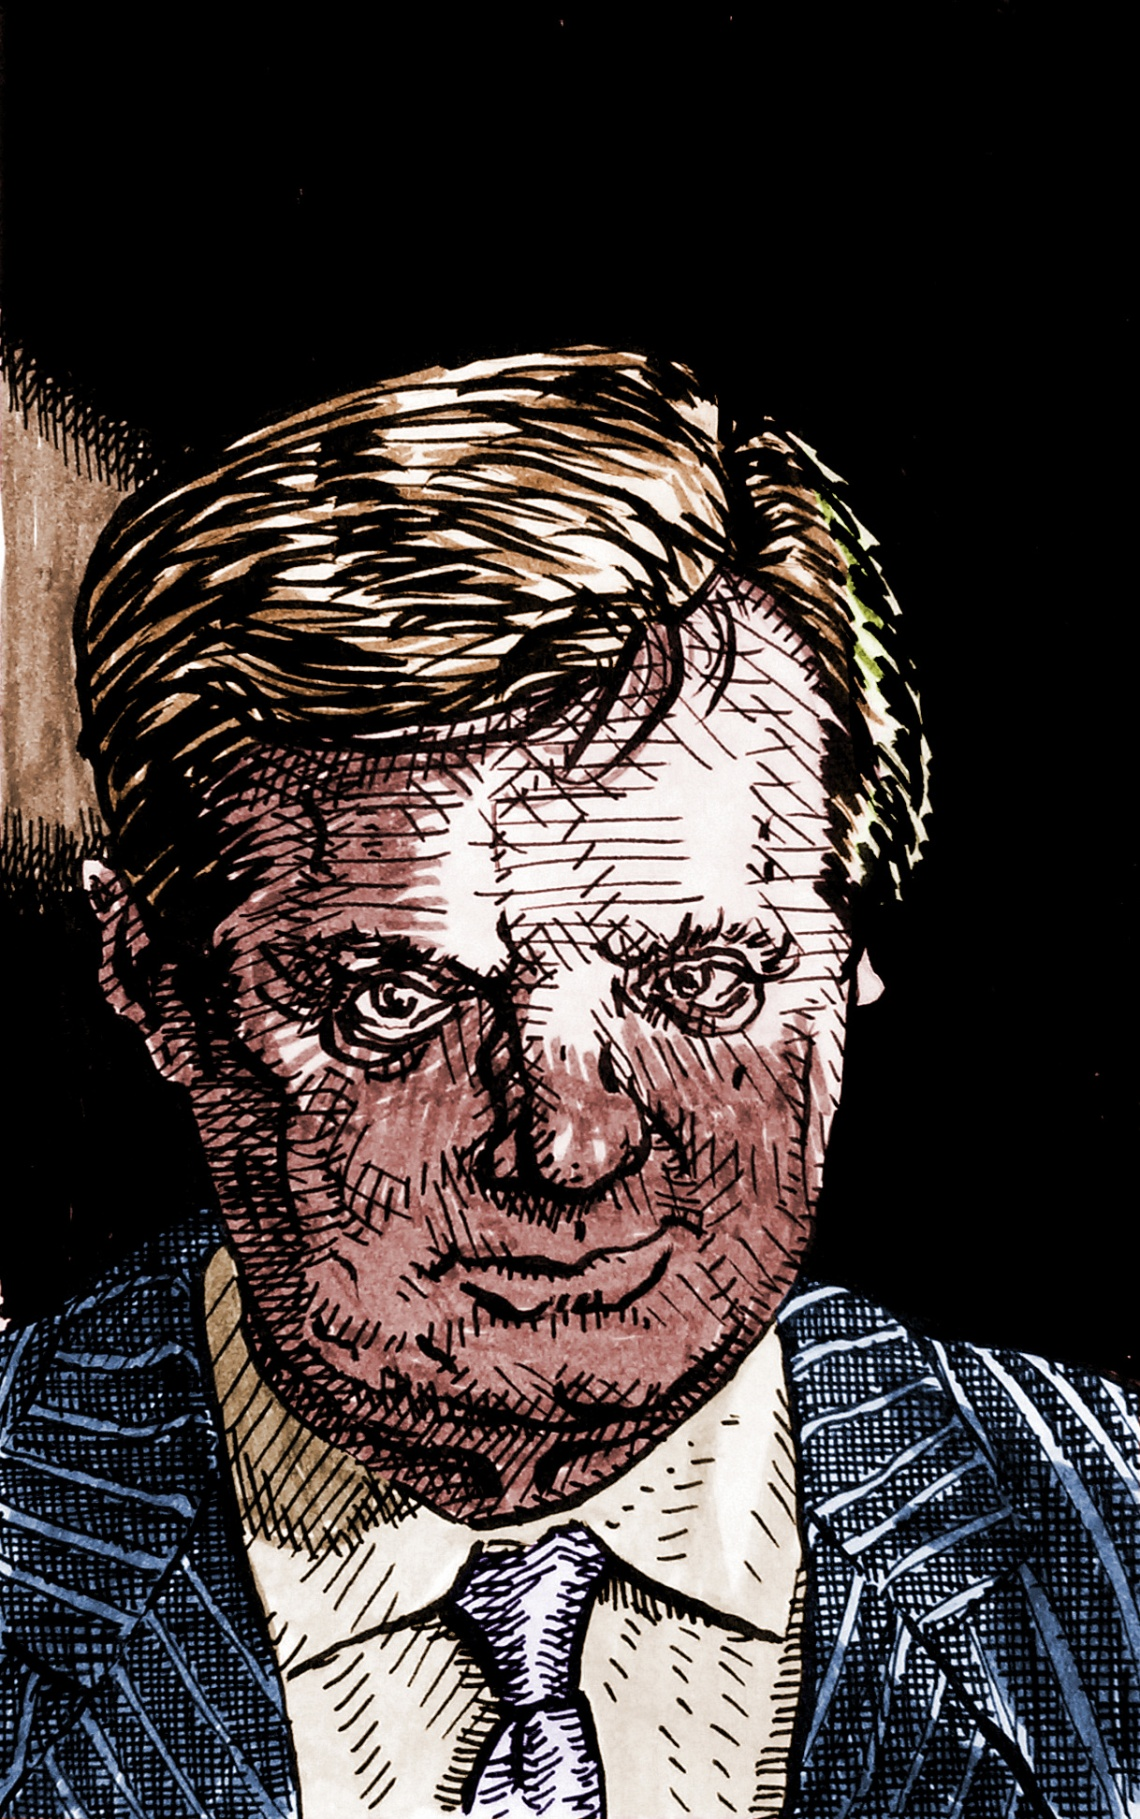 Paul Manafort illustration